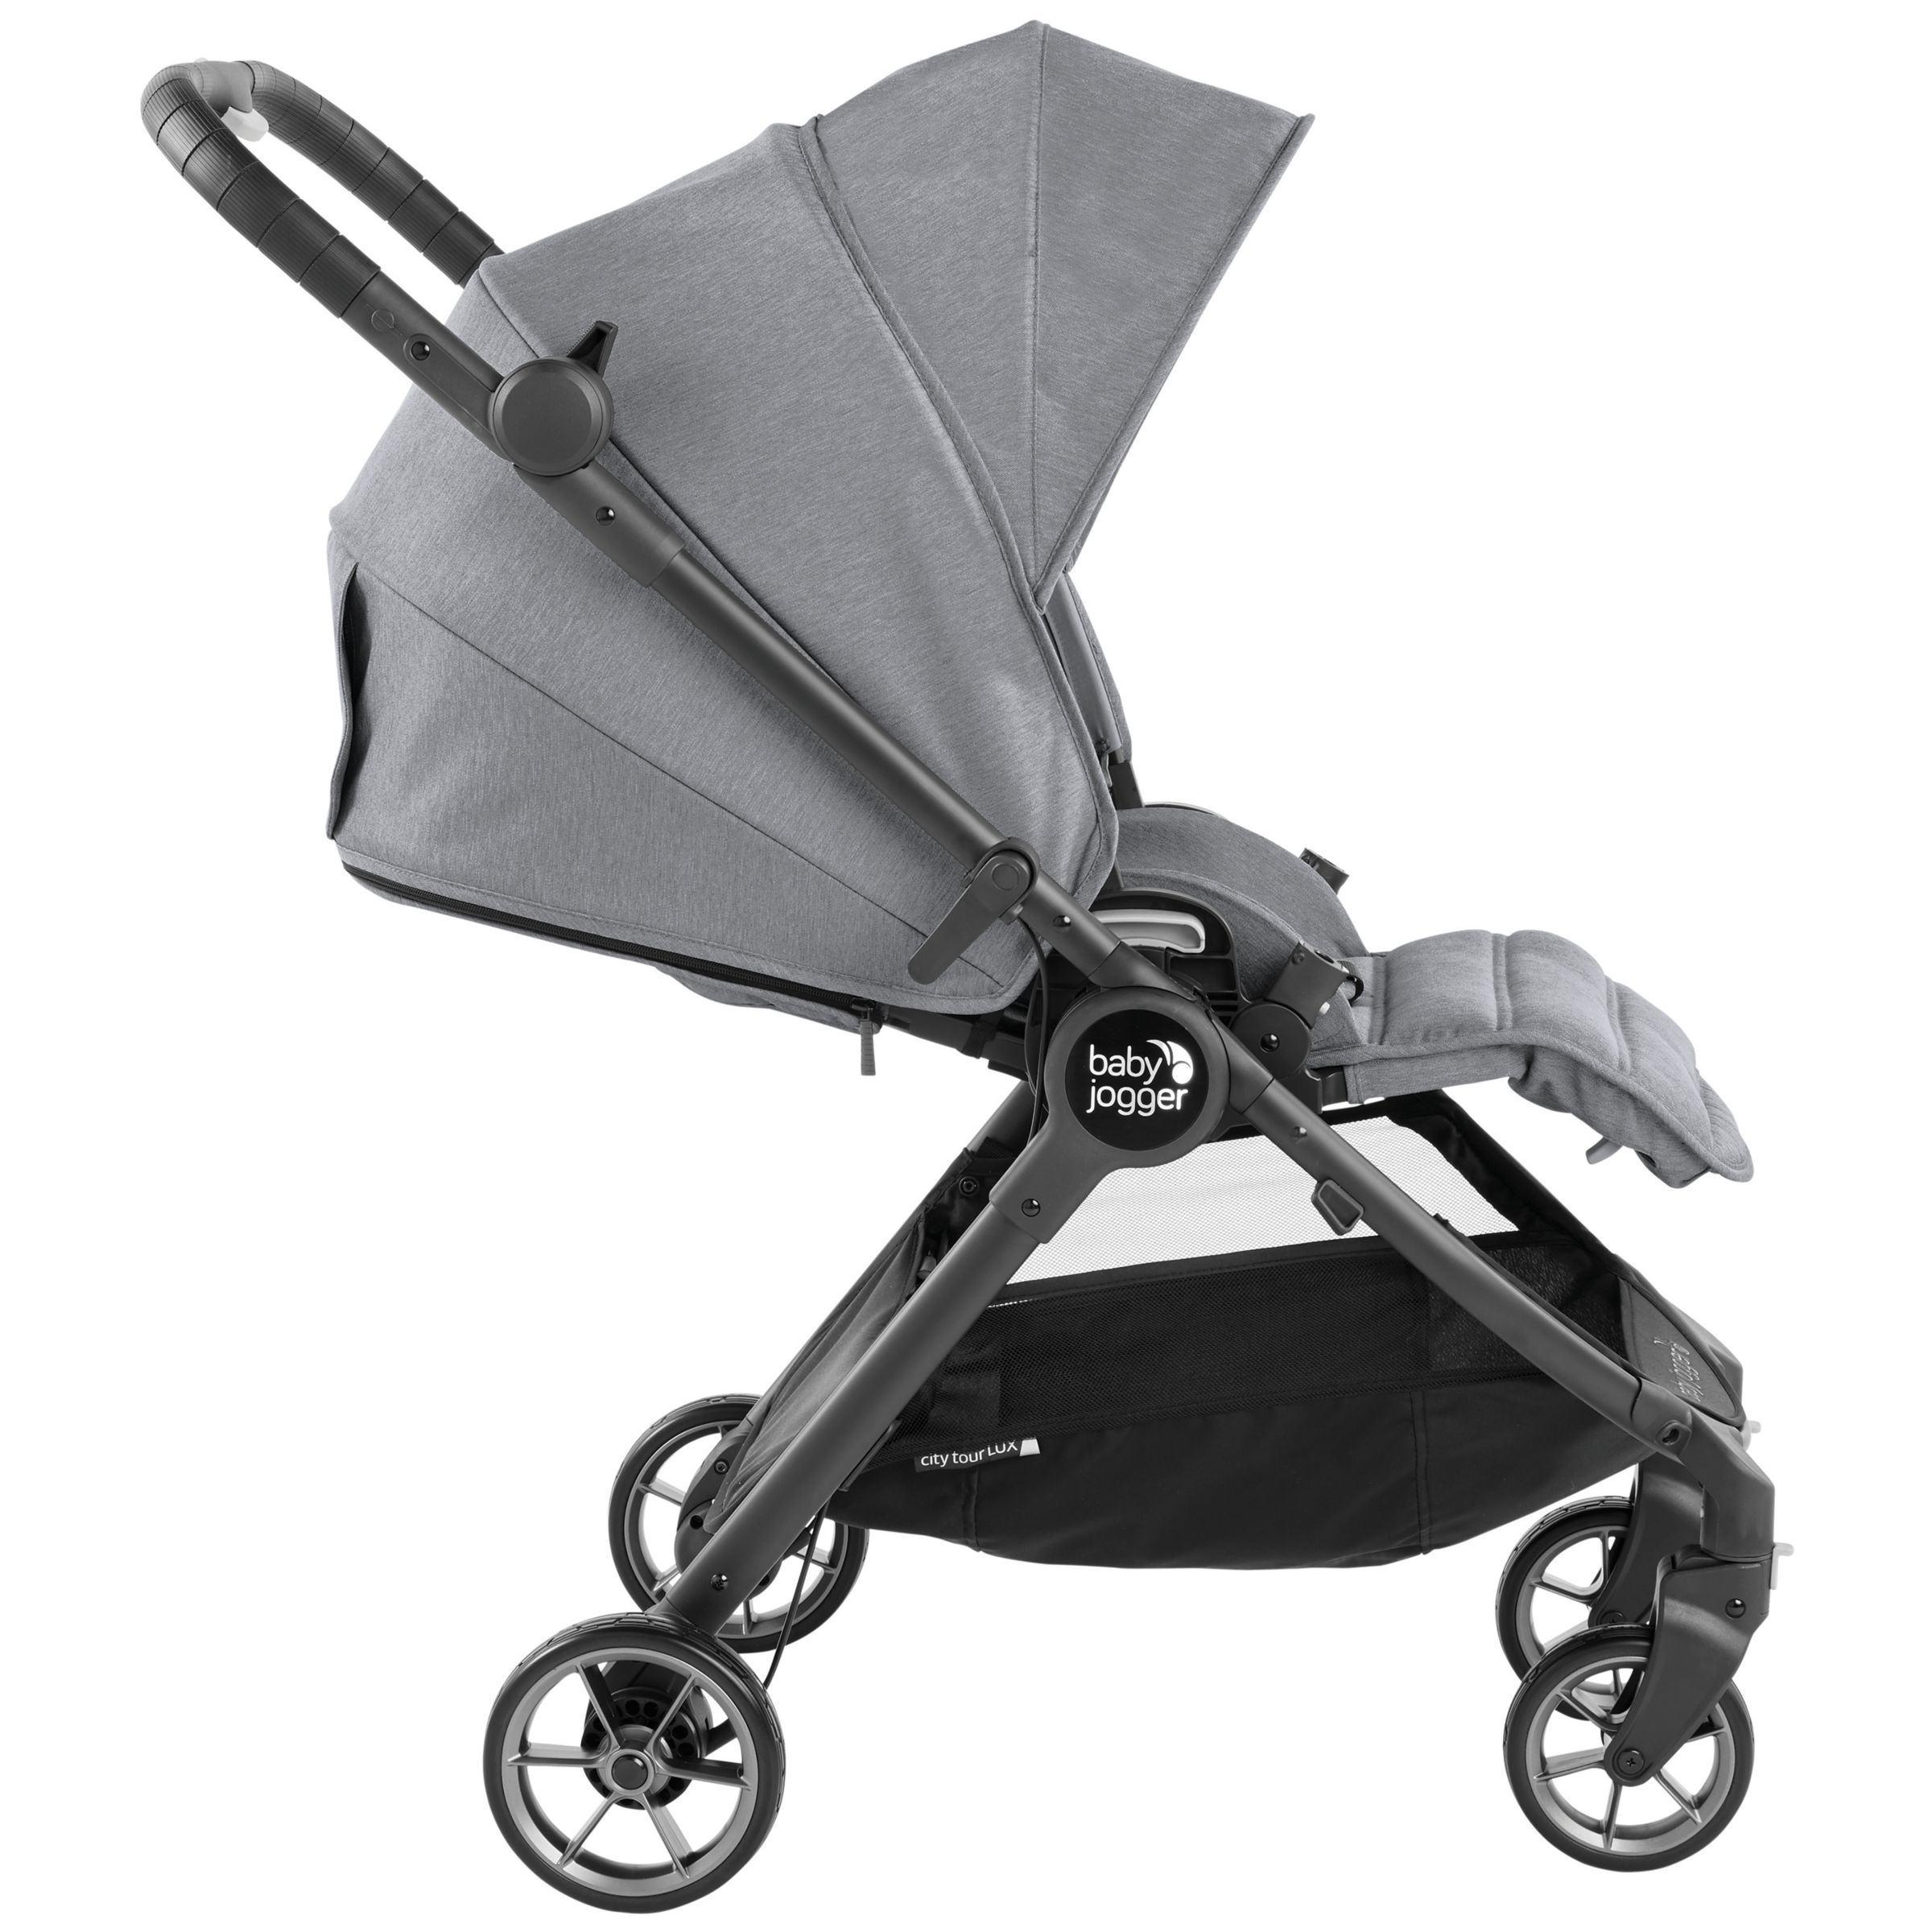 Baby Jogger City Tour LUX Pushchair, Slate Baby jogger